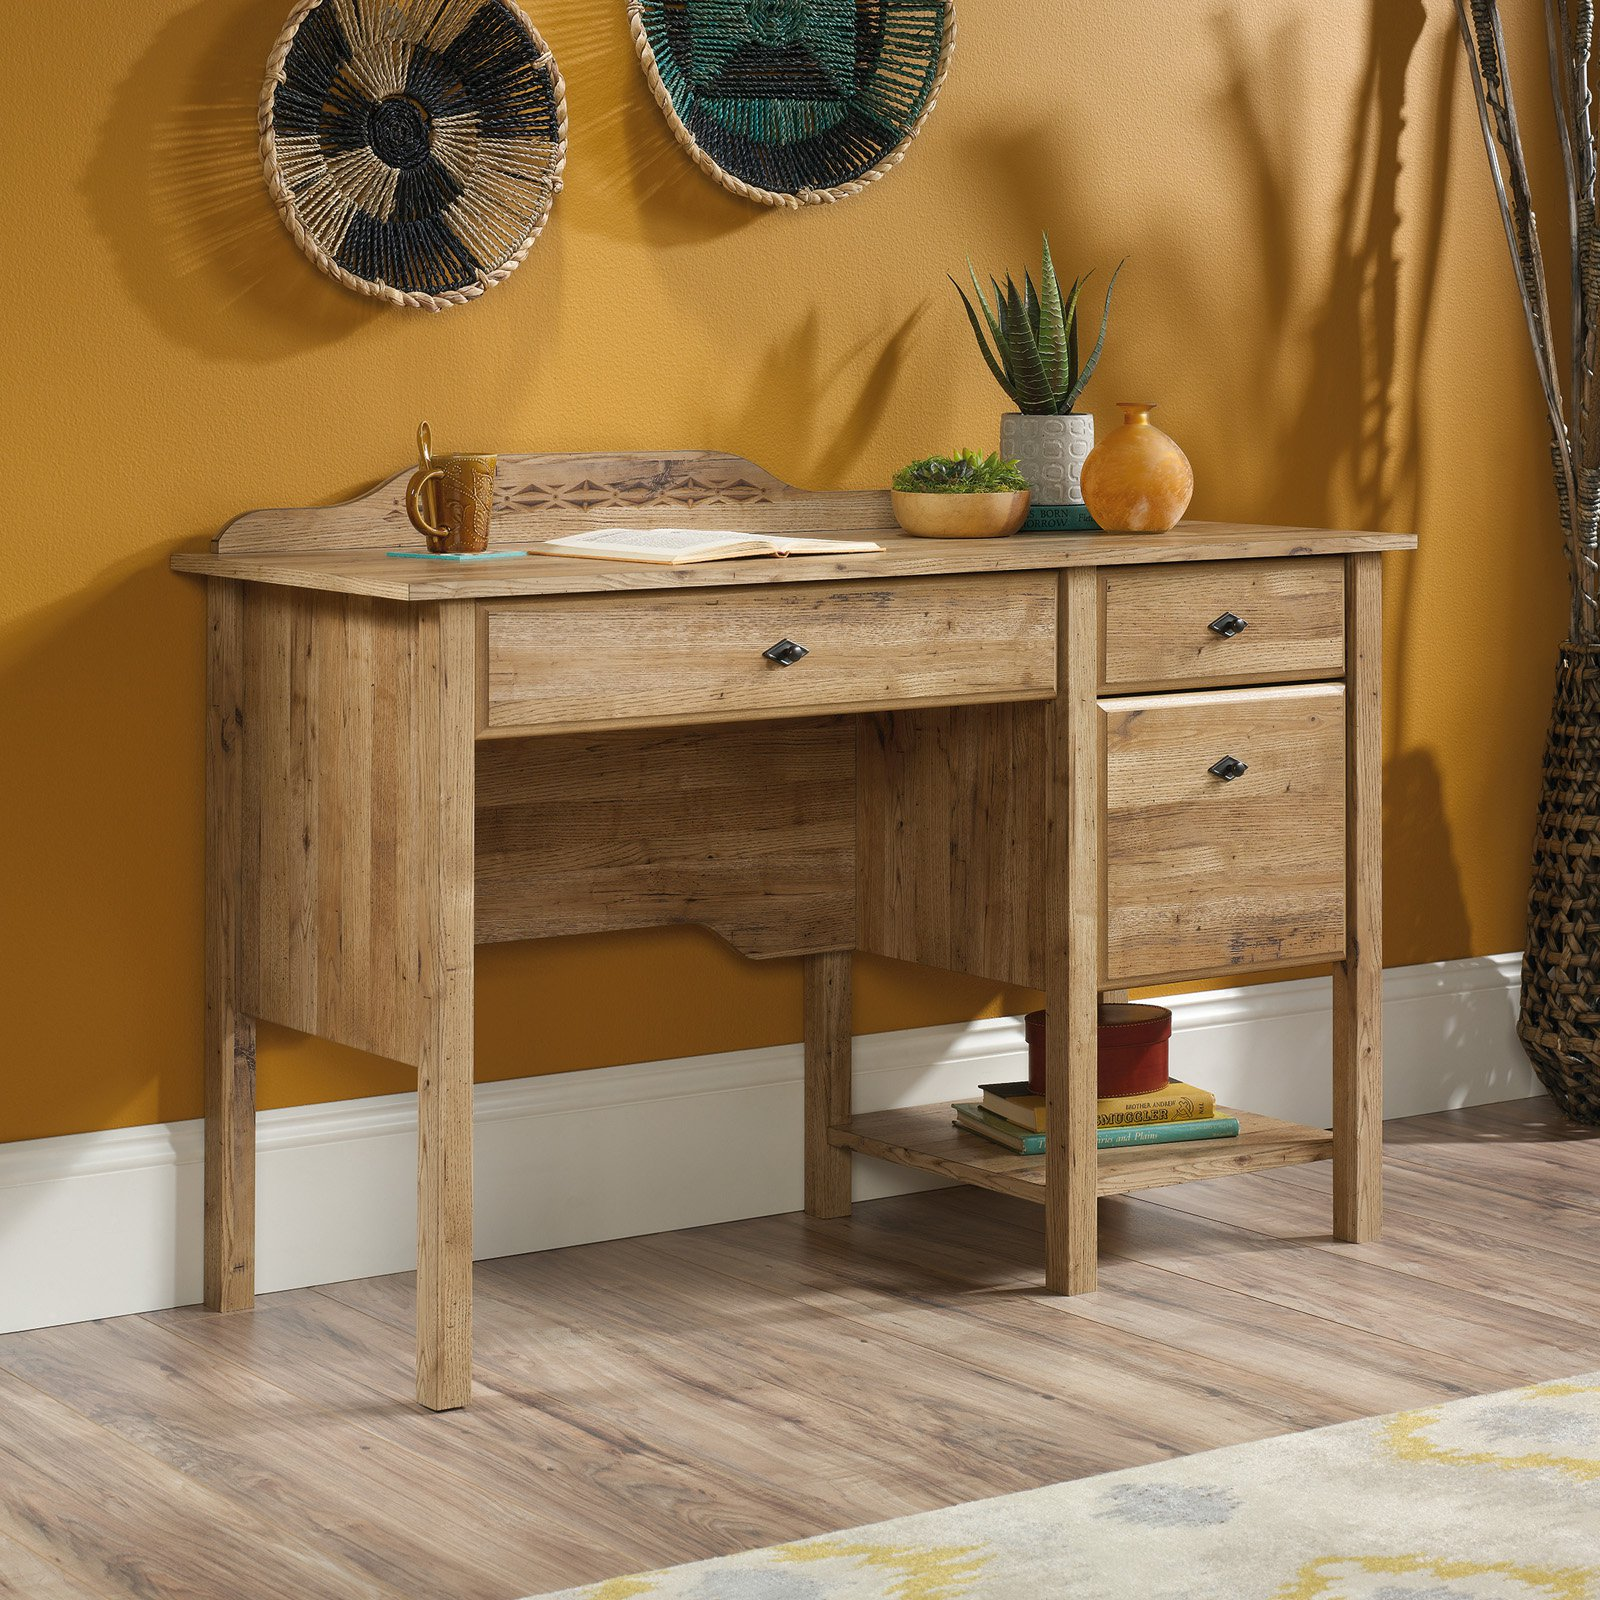 Sauder Viabella Desk, Antigua Chestnut Finish